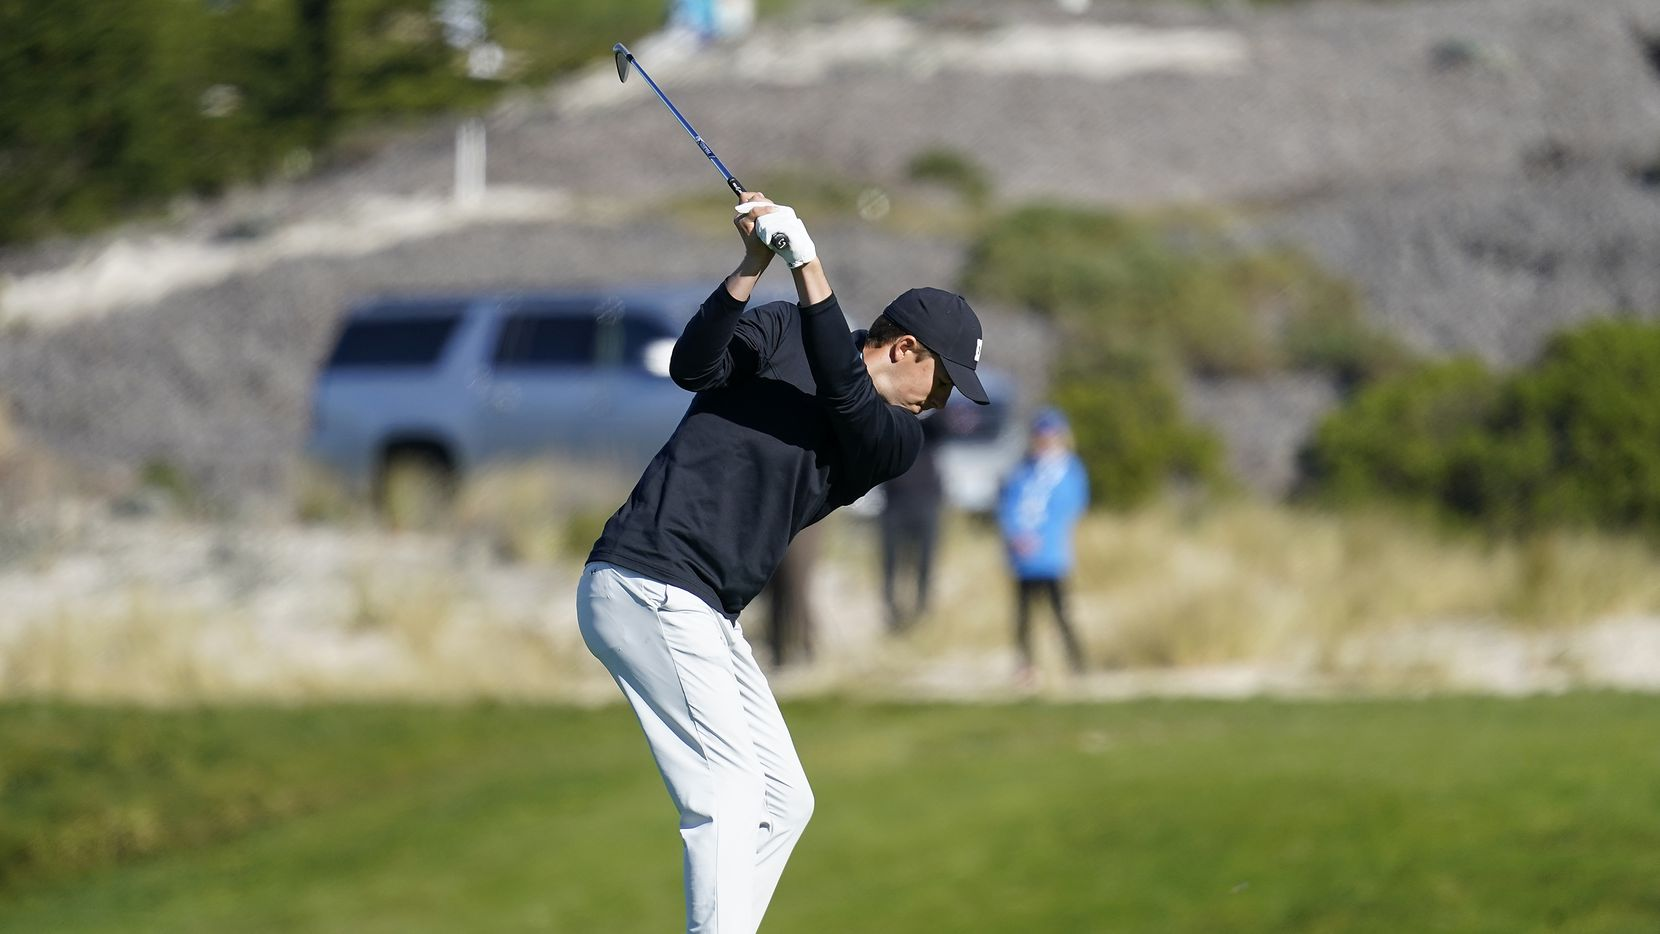 Jordan Spieth hits off the fourth fairway of the Spyglass Hill Golf Course during the first round of the AT&T Pebble Beach National Pro-Am golf tournament Thursday, Feb. 6, 2020, in Pebble Beach, Calif. (AP Photo/Tony Avelar)